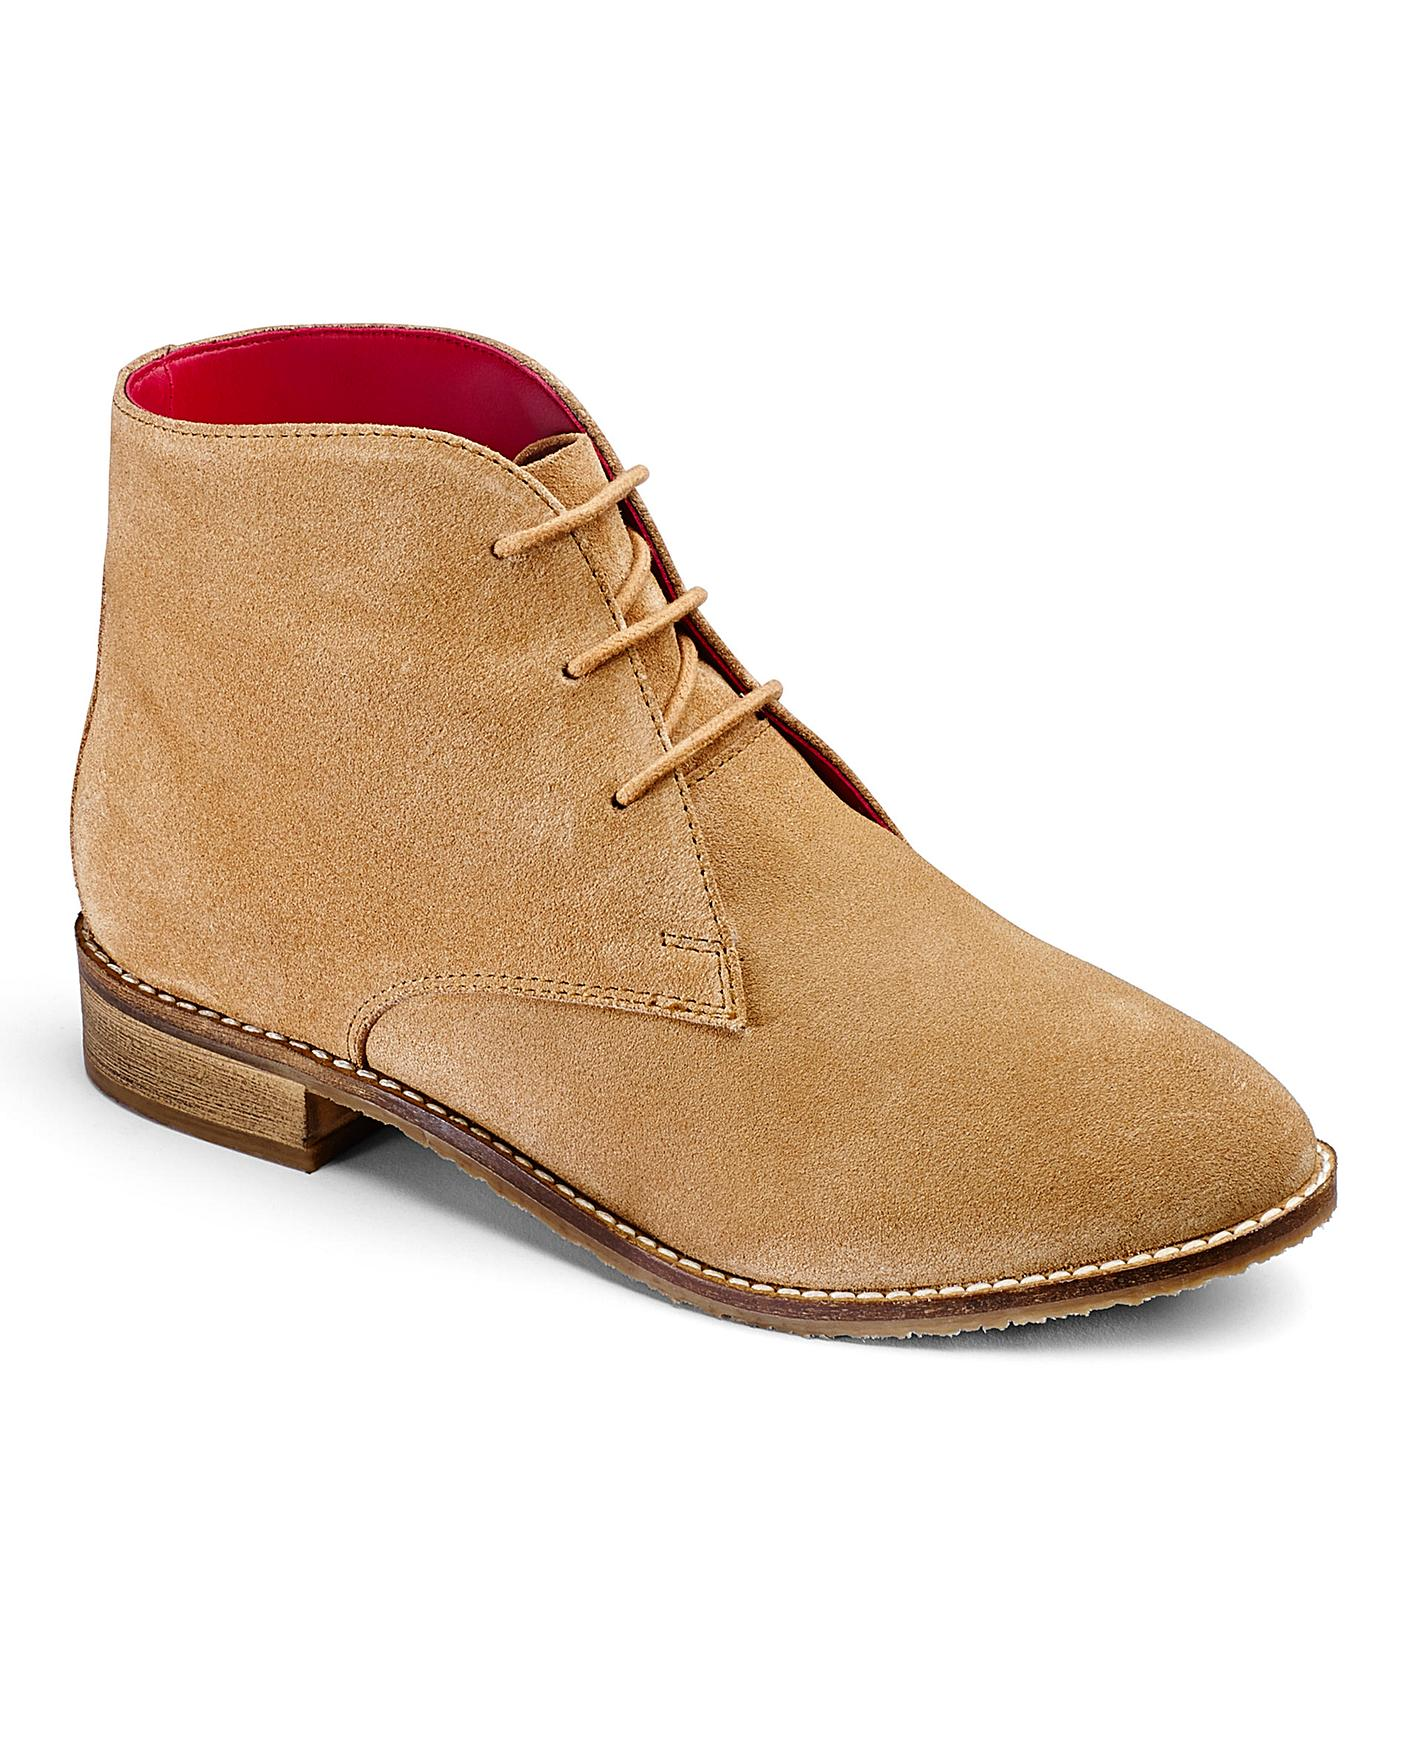 Brevitt Suede Lace Up Boots E Fit Crazy Clearance